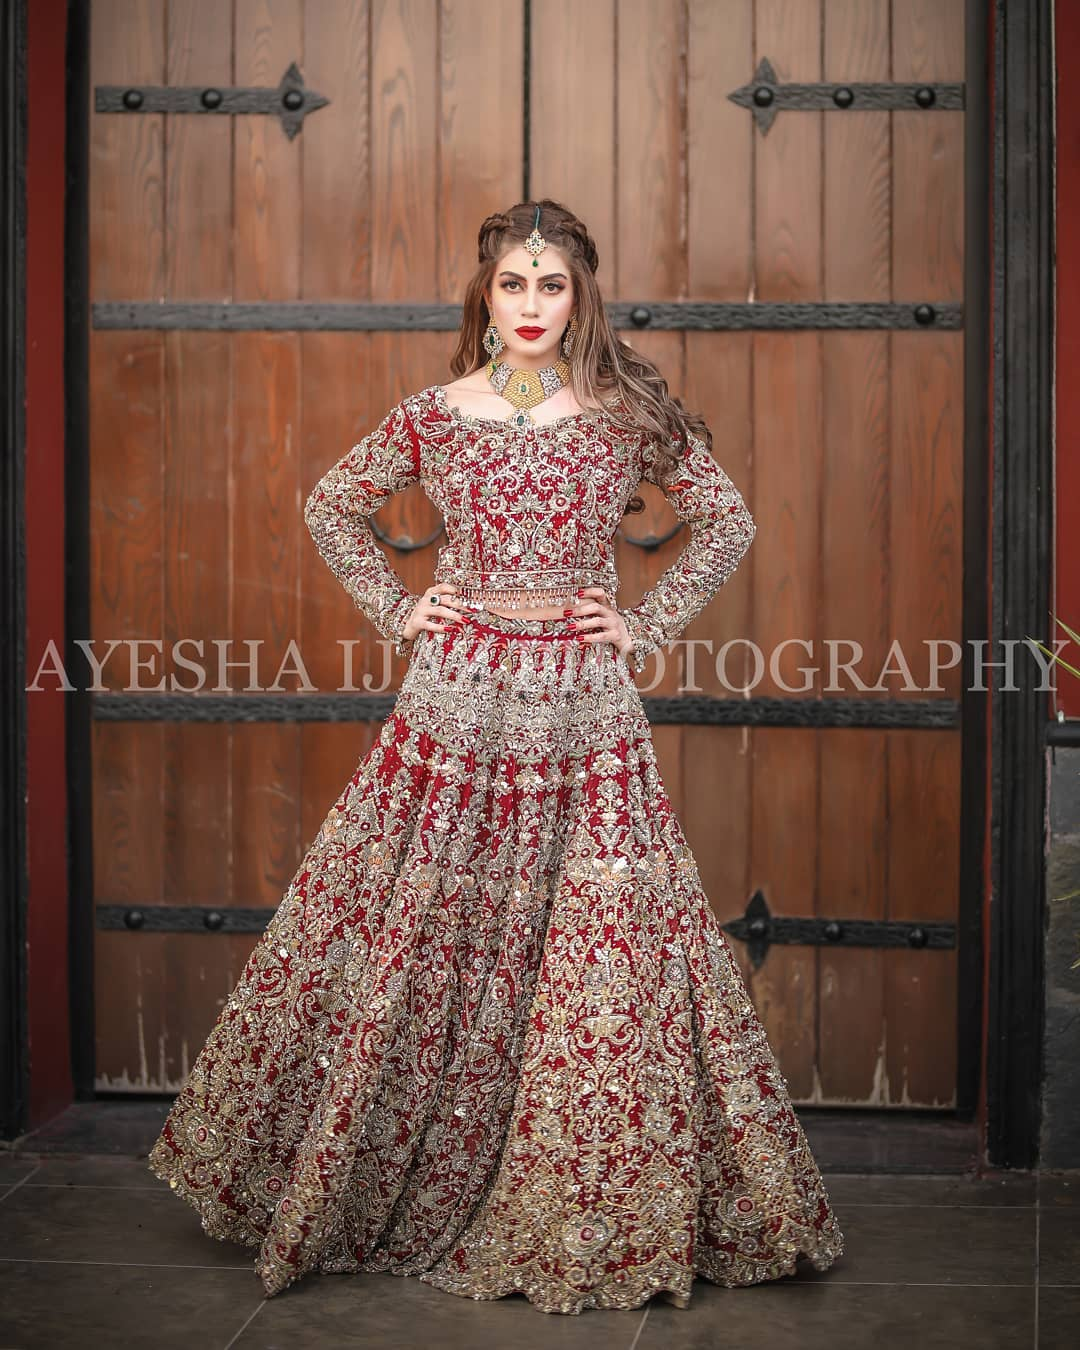 Actress Sadia Faisal Looking Awesome in her New Bridal Shoot